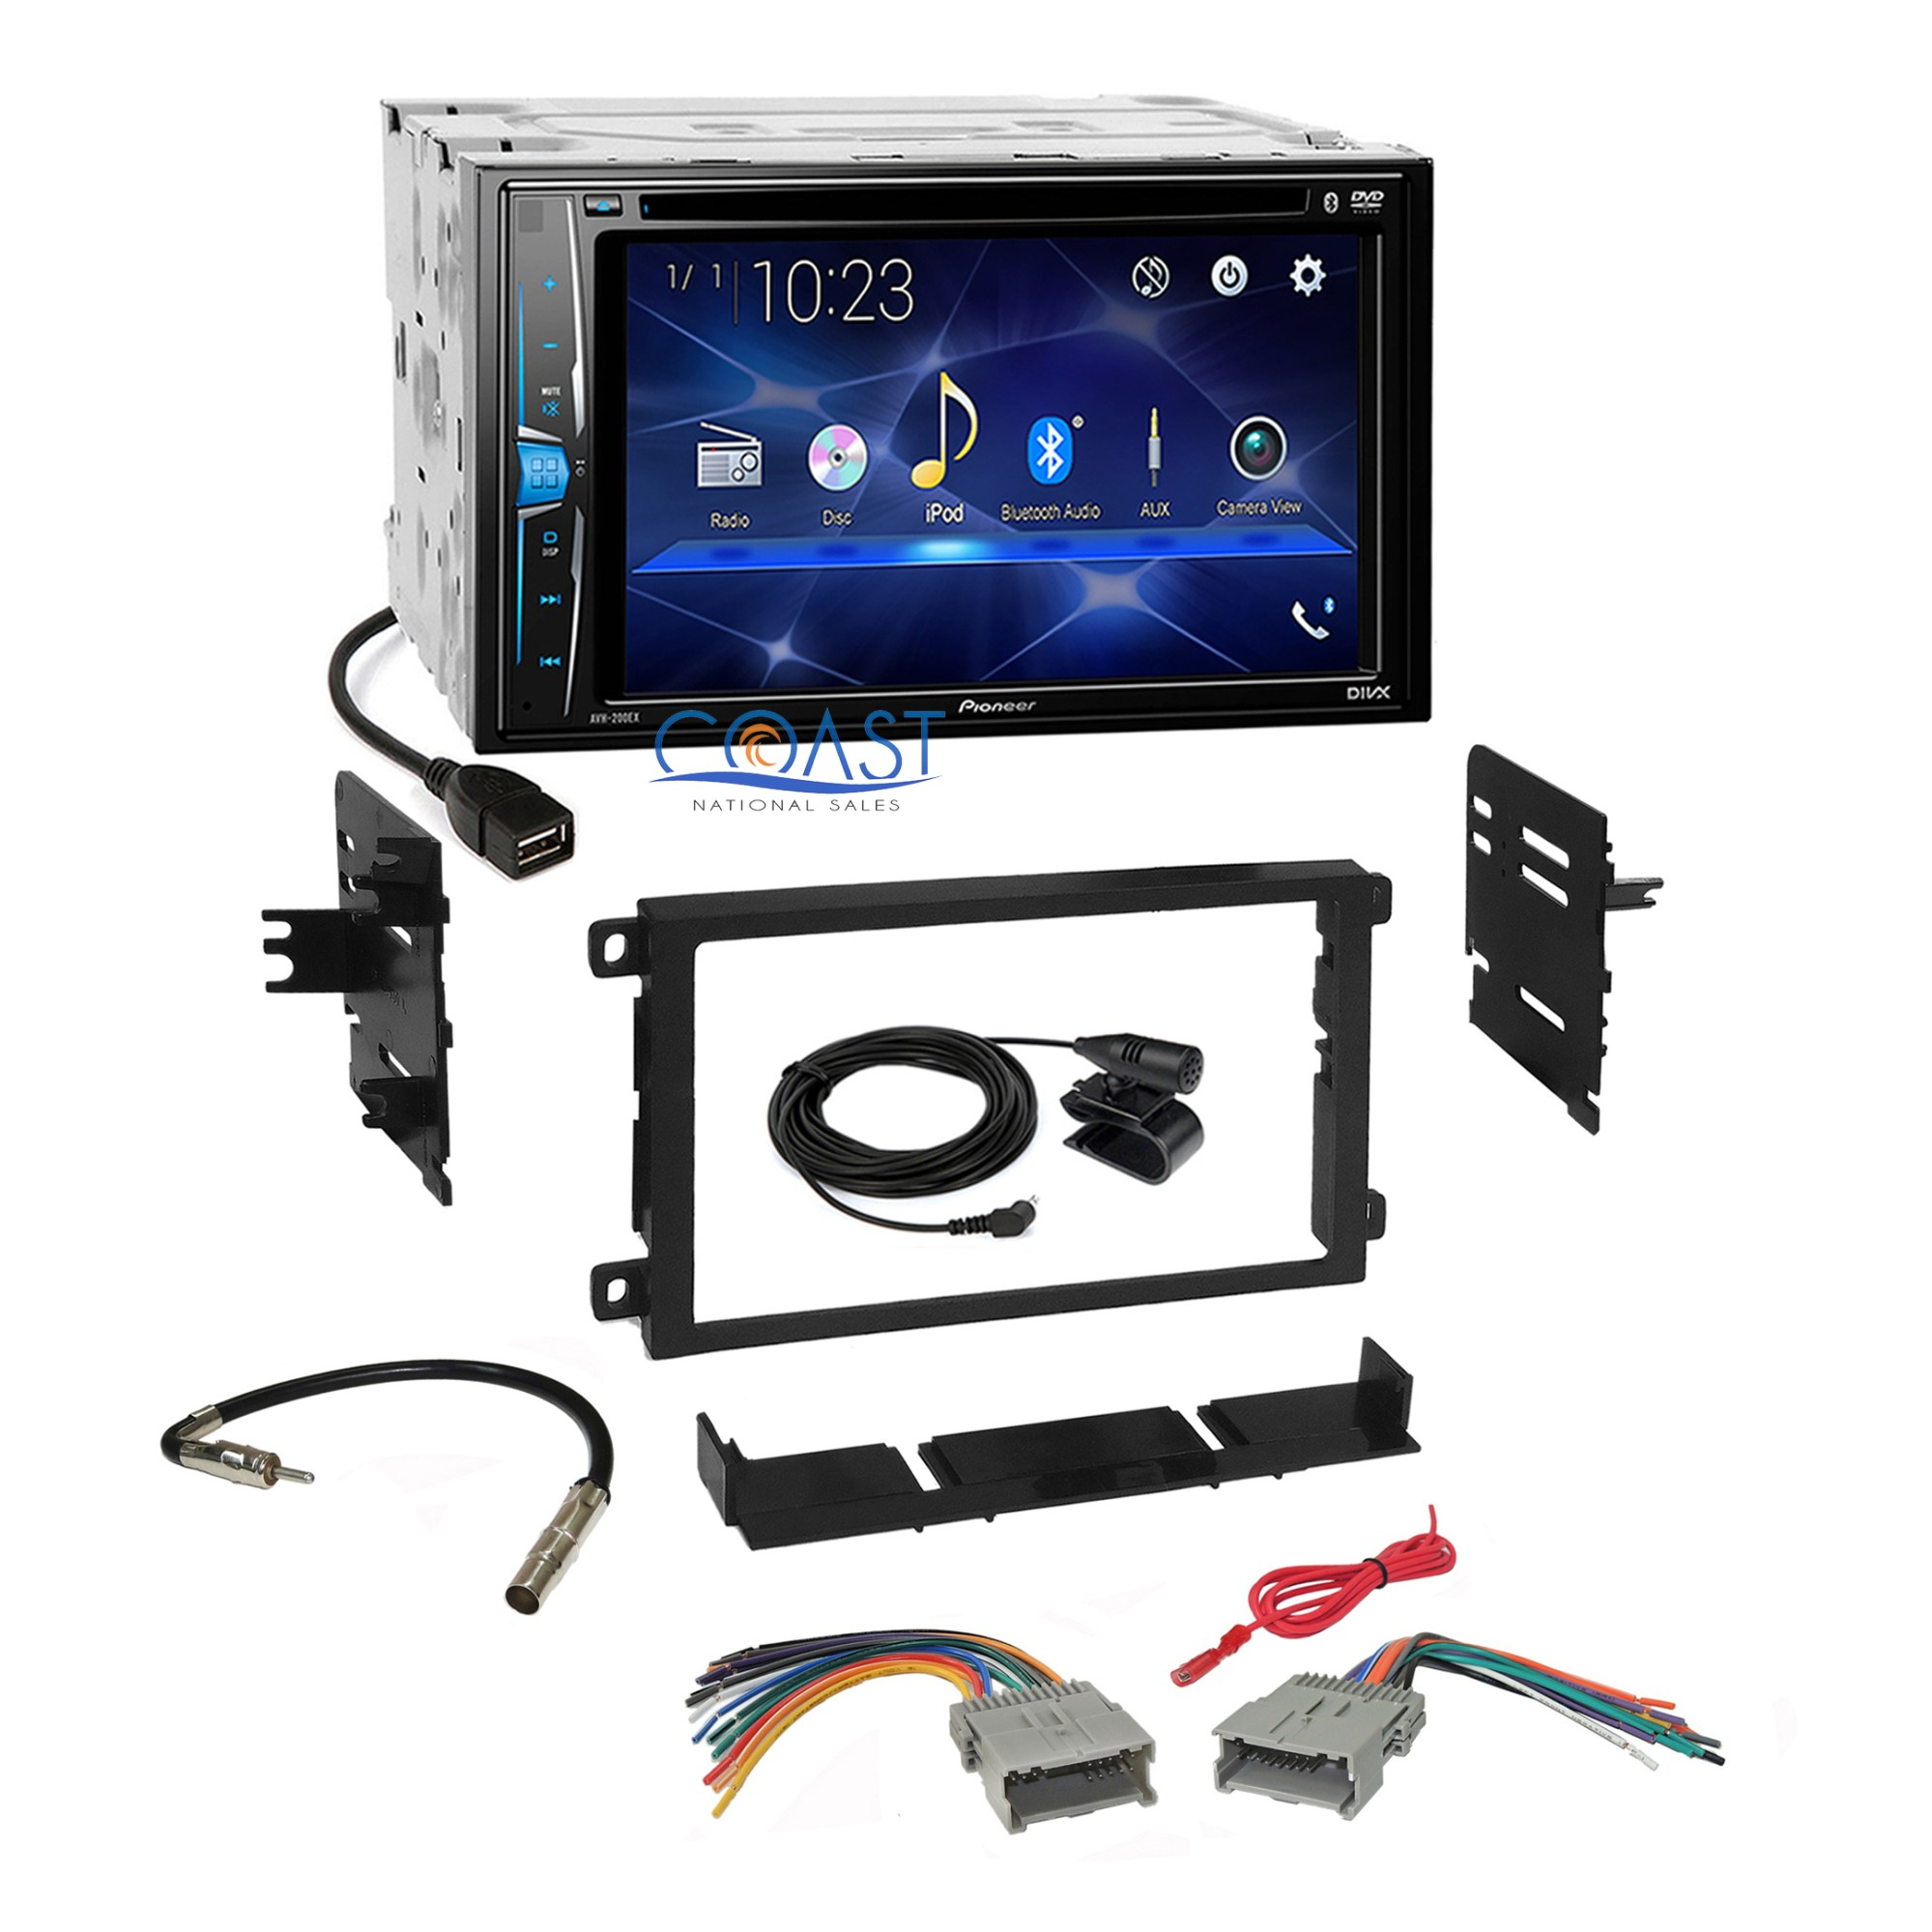 hight resolution of details about pioneer 2018 dvd bluetooth stereo dash kit harness for 1992 chevy gmc pontiac